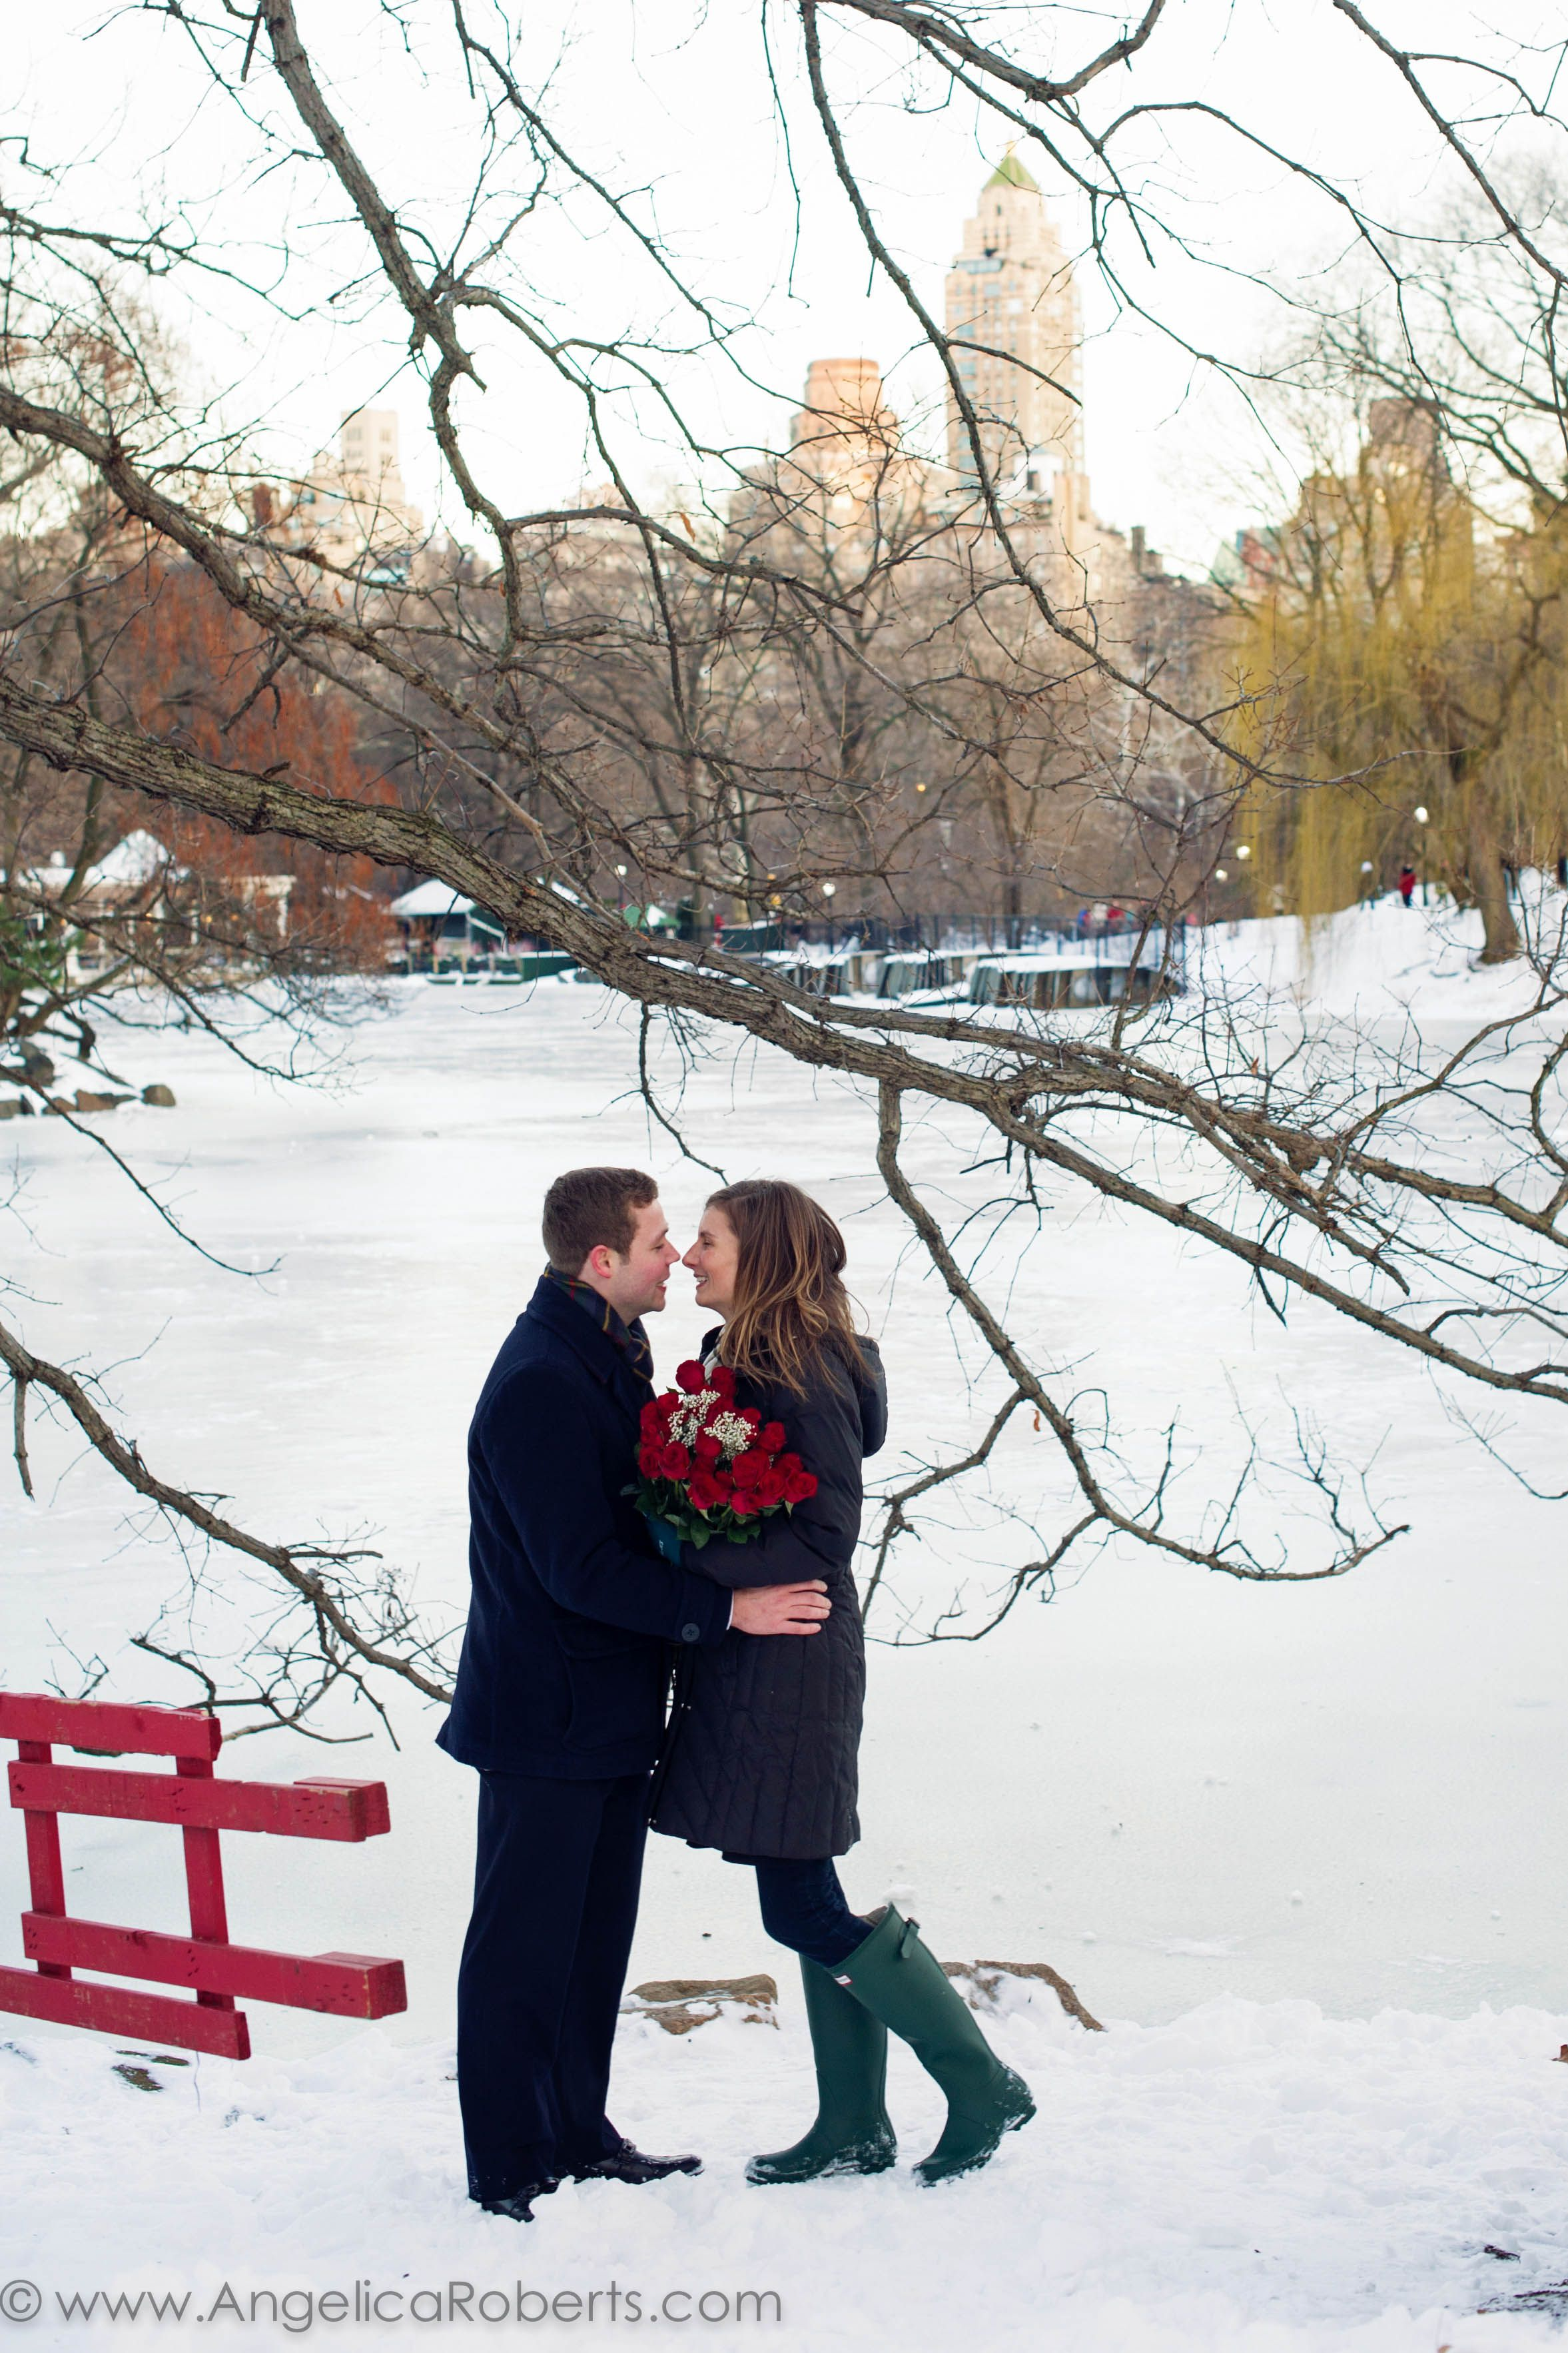 Pre Wedding Photography Nyc: #Central Park #engagement #photography #New York City